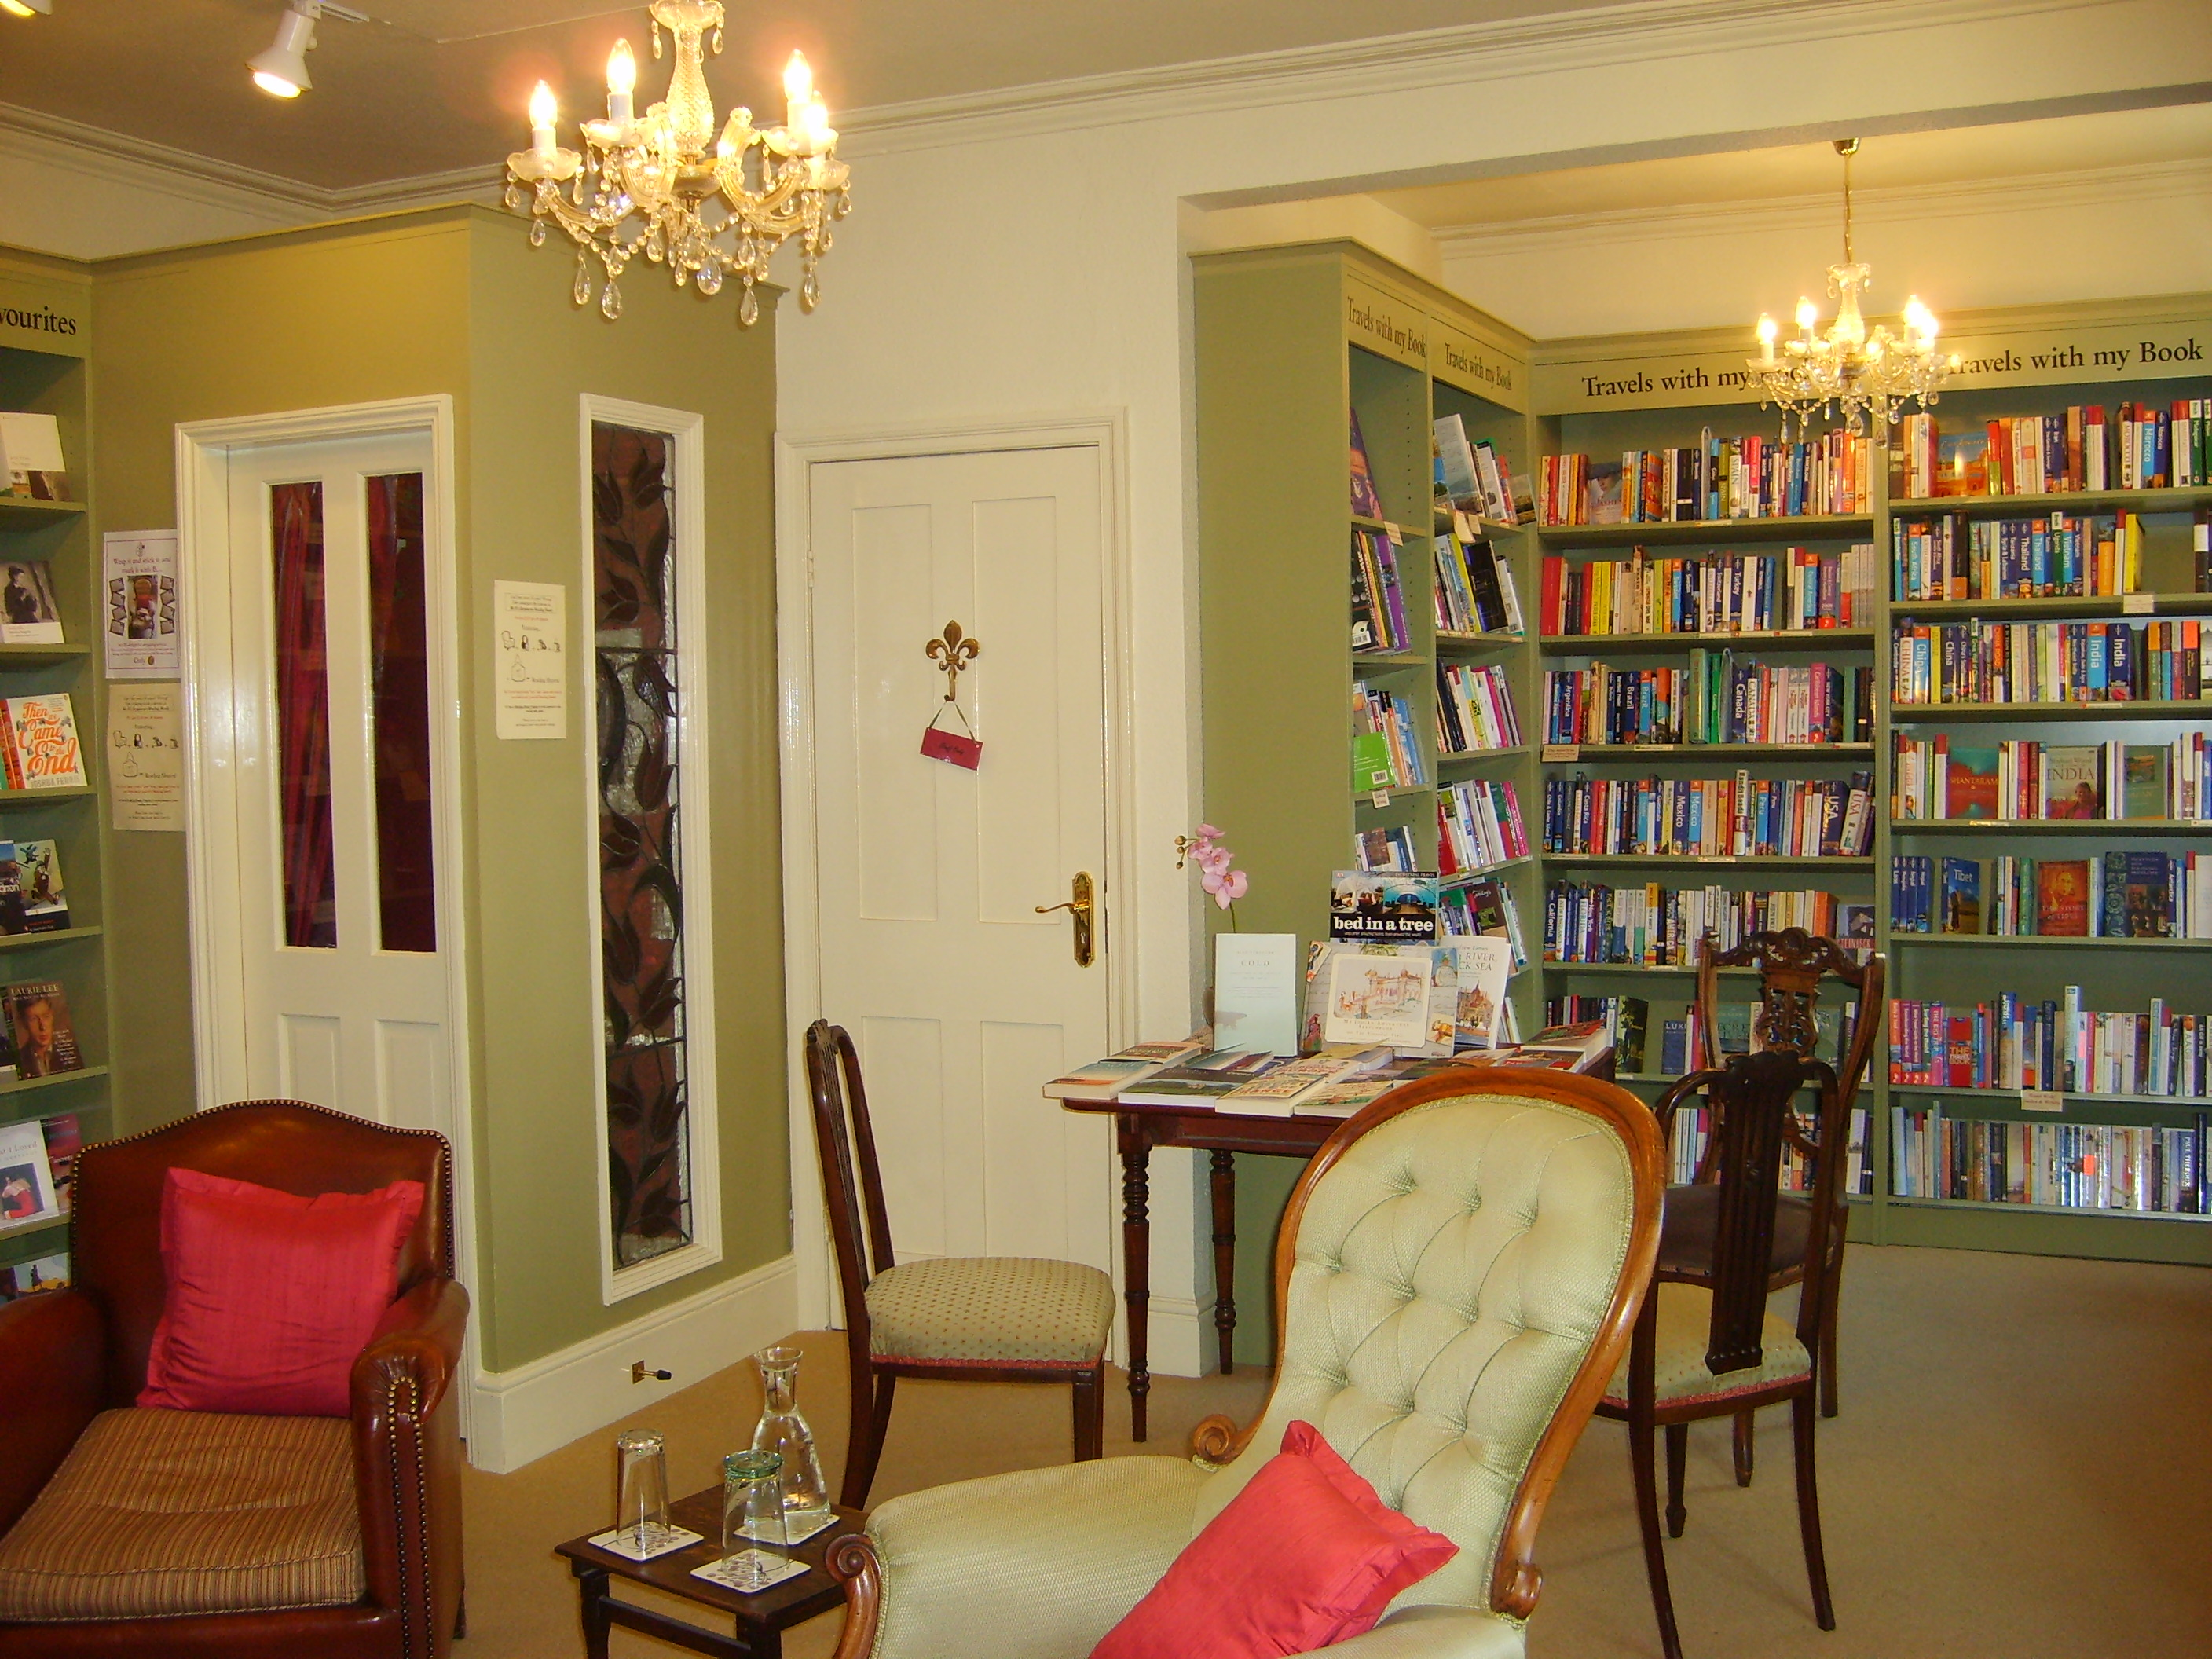 """The famed """"Bibliotherapy Room"""" at Mr B's Bookshop in Bath features free coffee and a fireplace"""